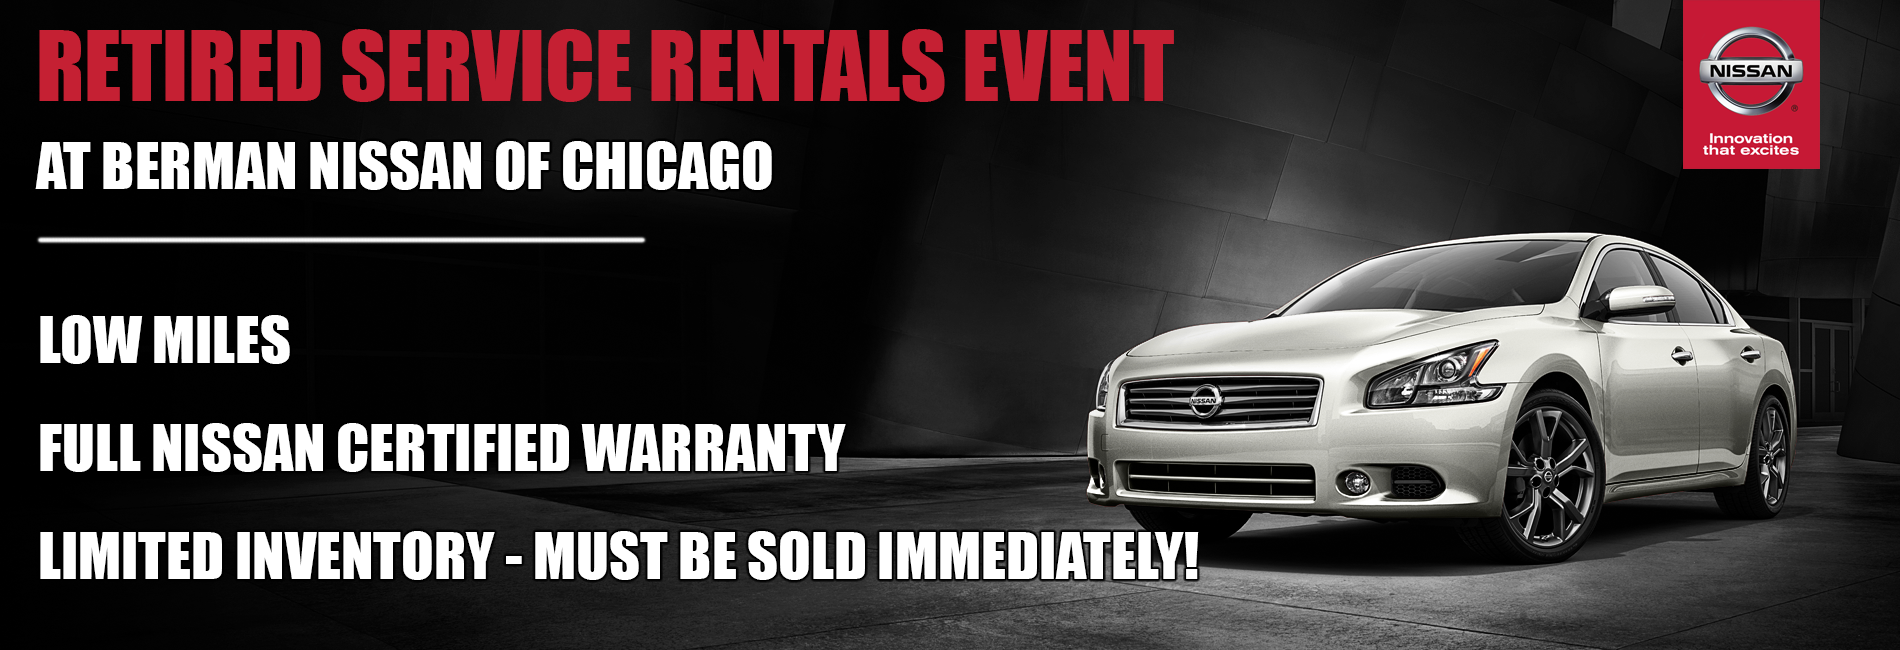 RETIRED SERVICE RENTALS EVENT at Berman Nissan of Chicago